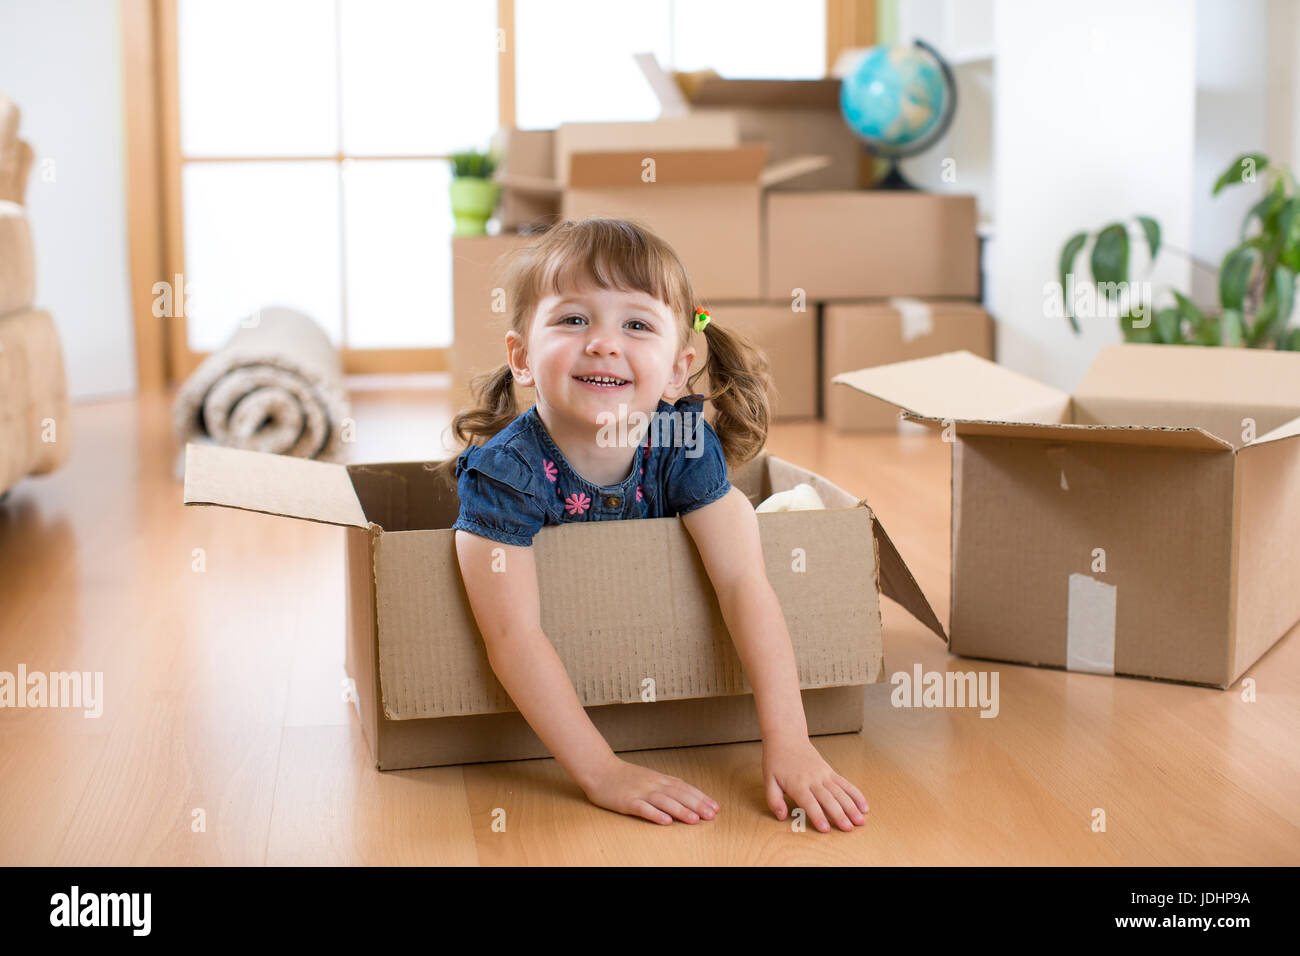 Just moved into a new home. Child into cardboard box. Stock Photo